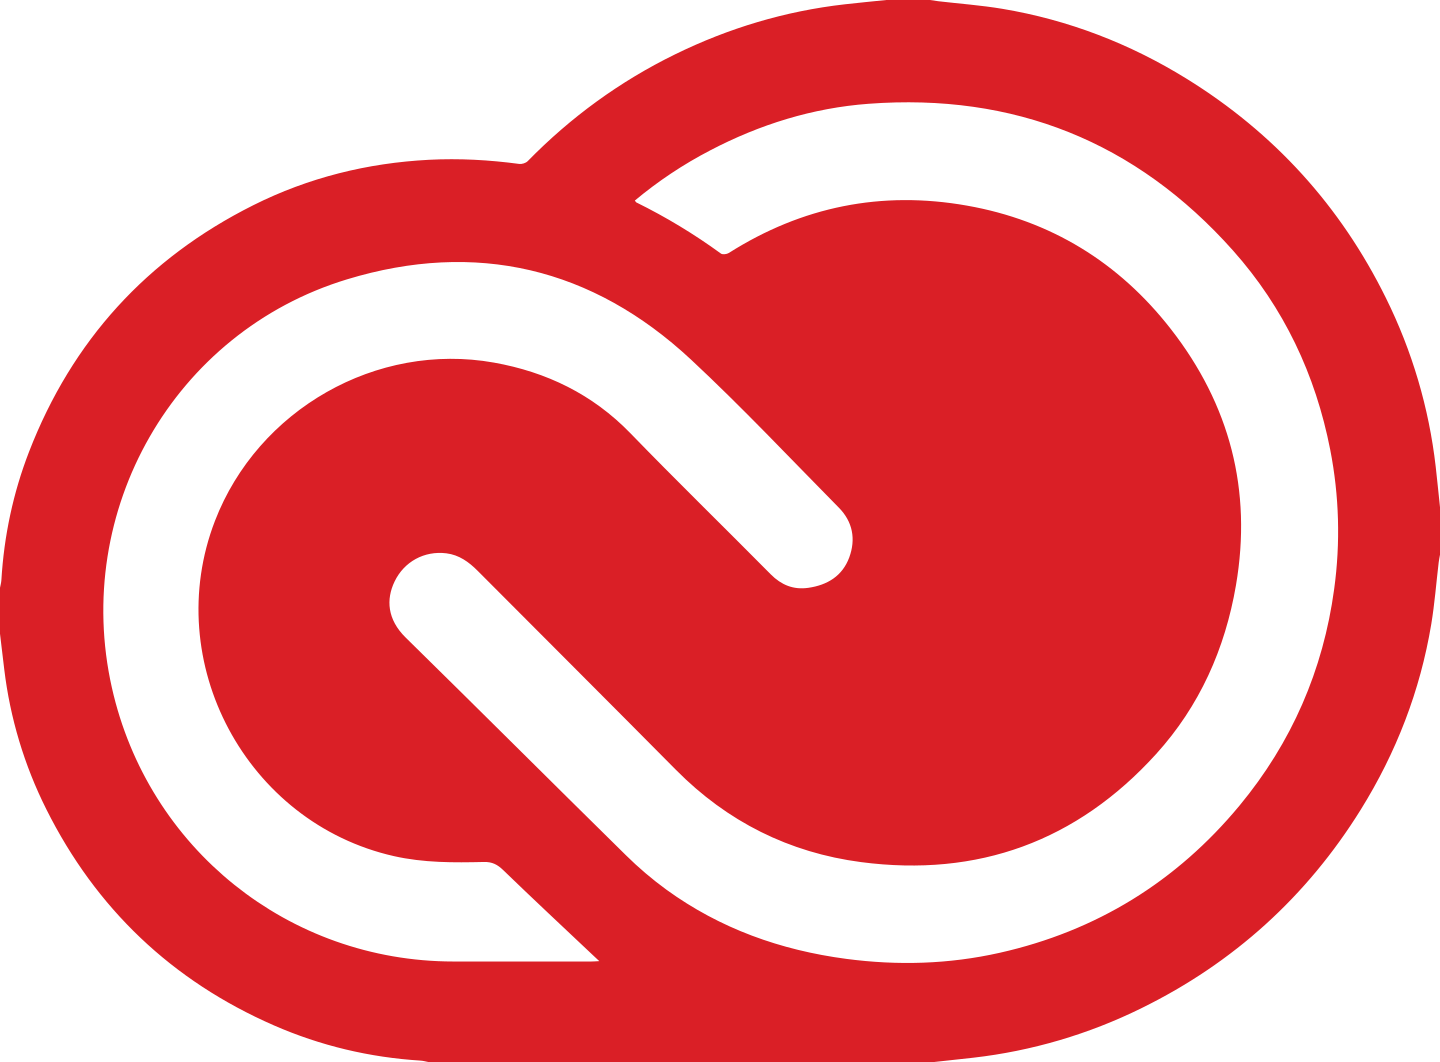 adobe creative cloud logo 2 - Adobe Creative Cloud Logo